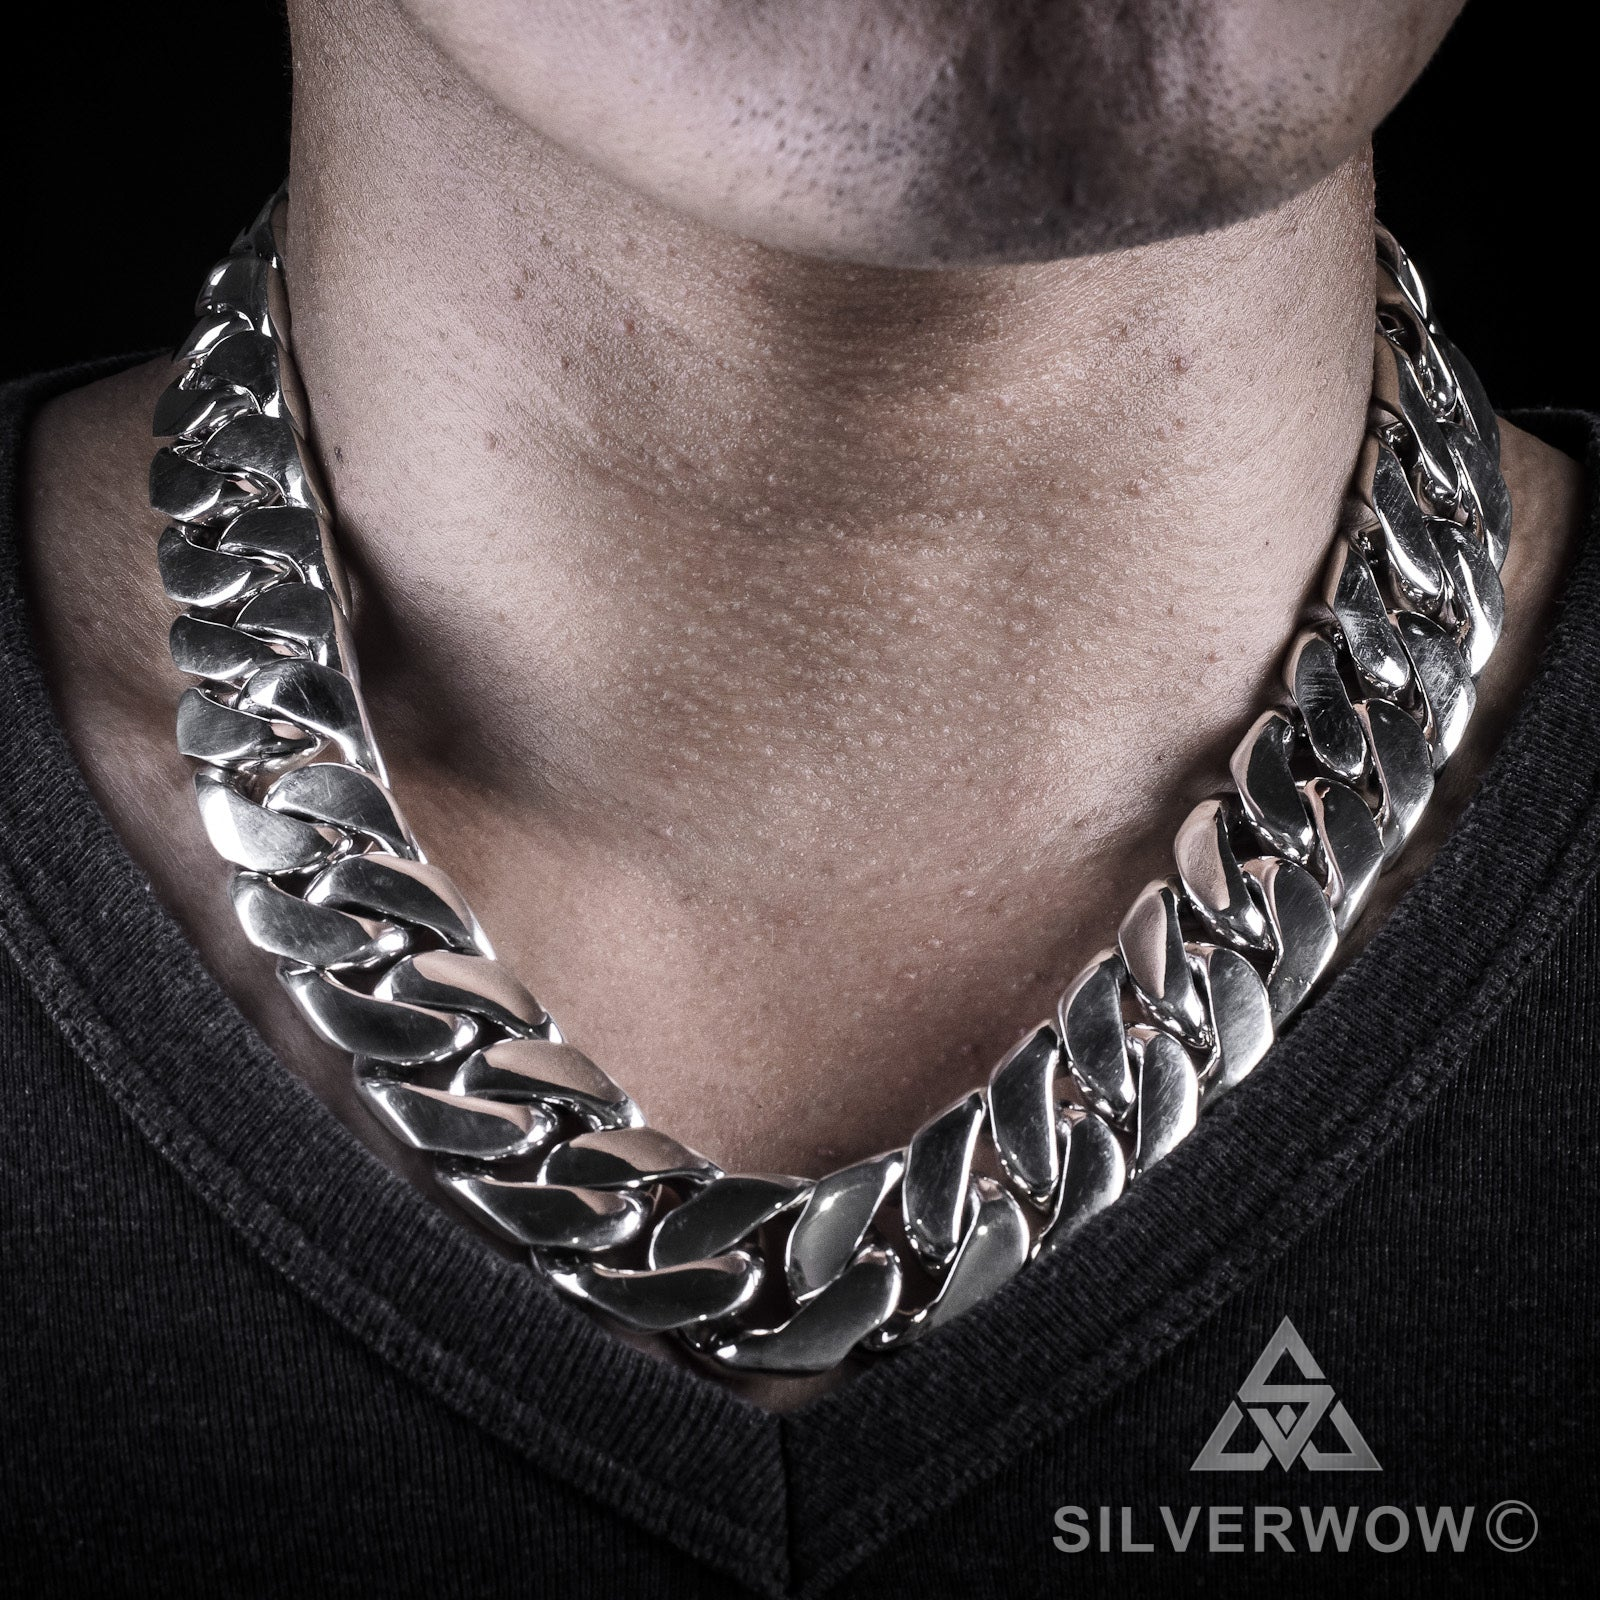 Oxidized silver chain Versatile chain to wear with pendant or by itself. 20 Sterling silver chain with two hook clasps 10mm link chain